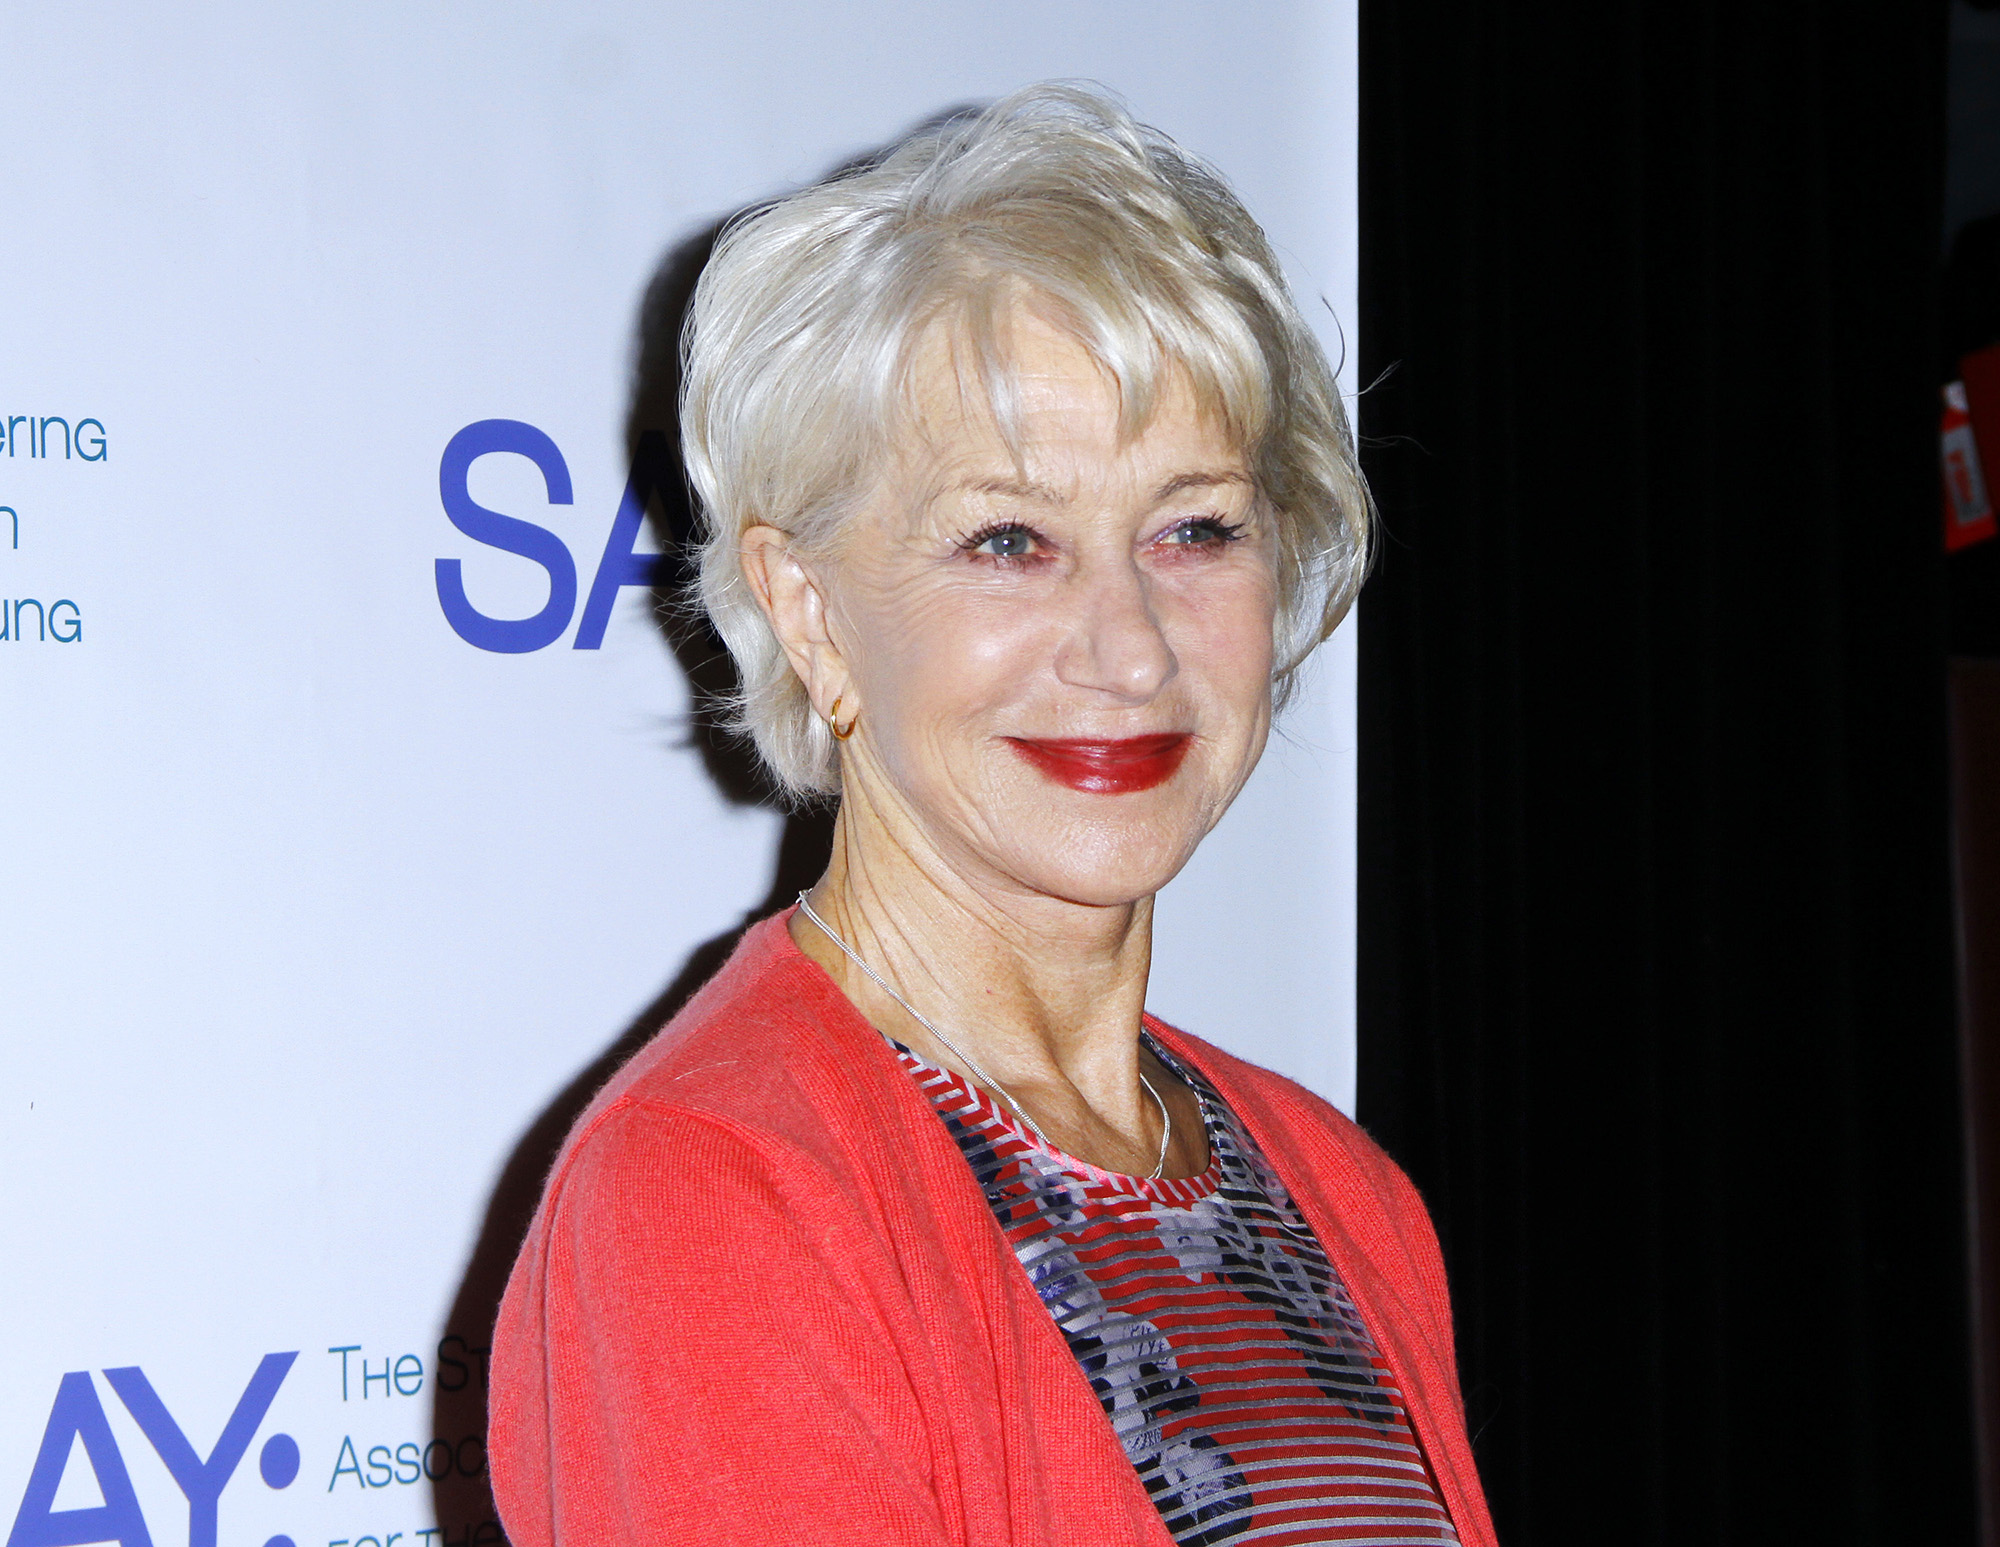 NEW YORK, NY - MAY 02:  Helen Mirren attends the 14th Annual Stuttering Association For The Young Benefit Gala (Photo by Donna Ward/Getty Images)